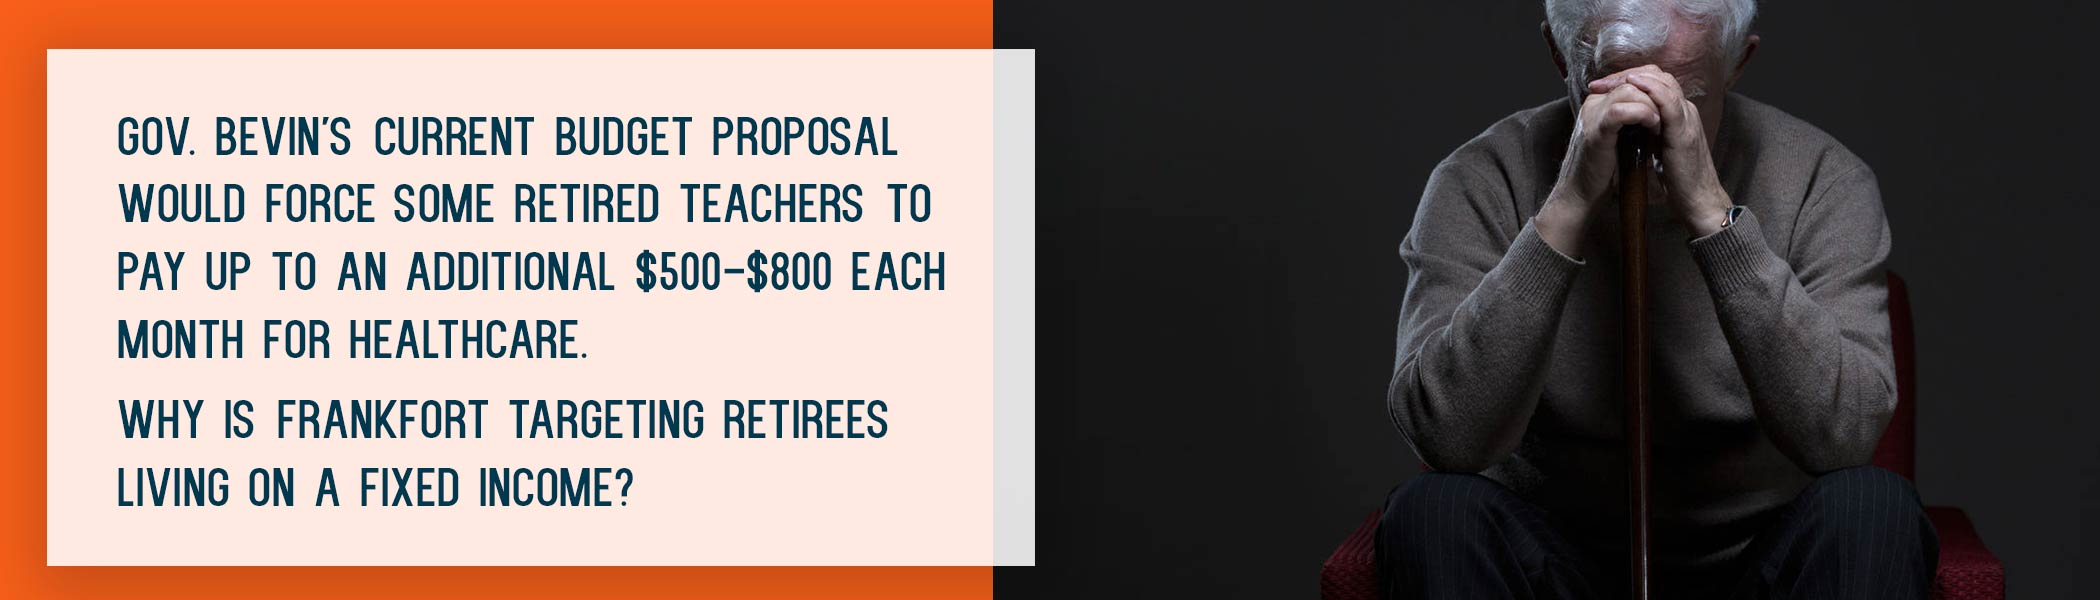 Gov. Bevin's current budget proposal would force some retired teachers to pay up to an additional $500-$800 each month for healthcare. Why is Frankfort targeting retirees living on a fixed income?